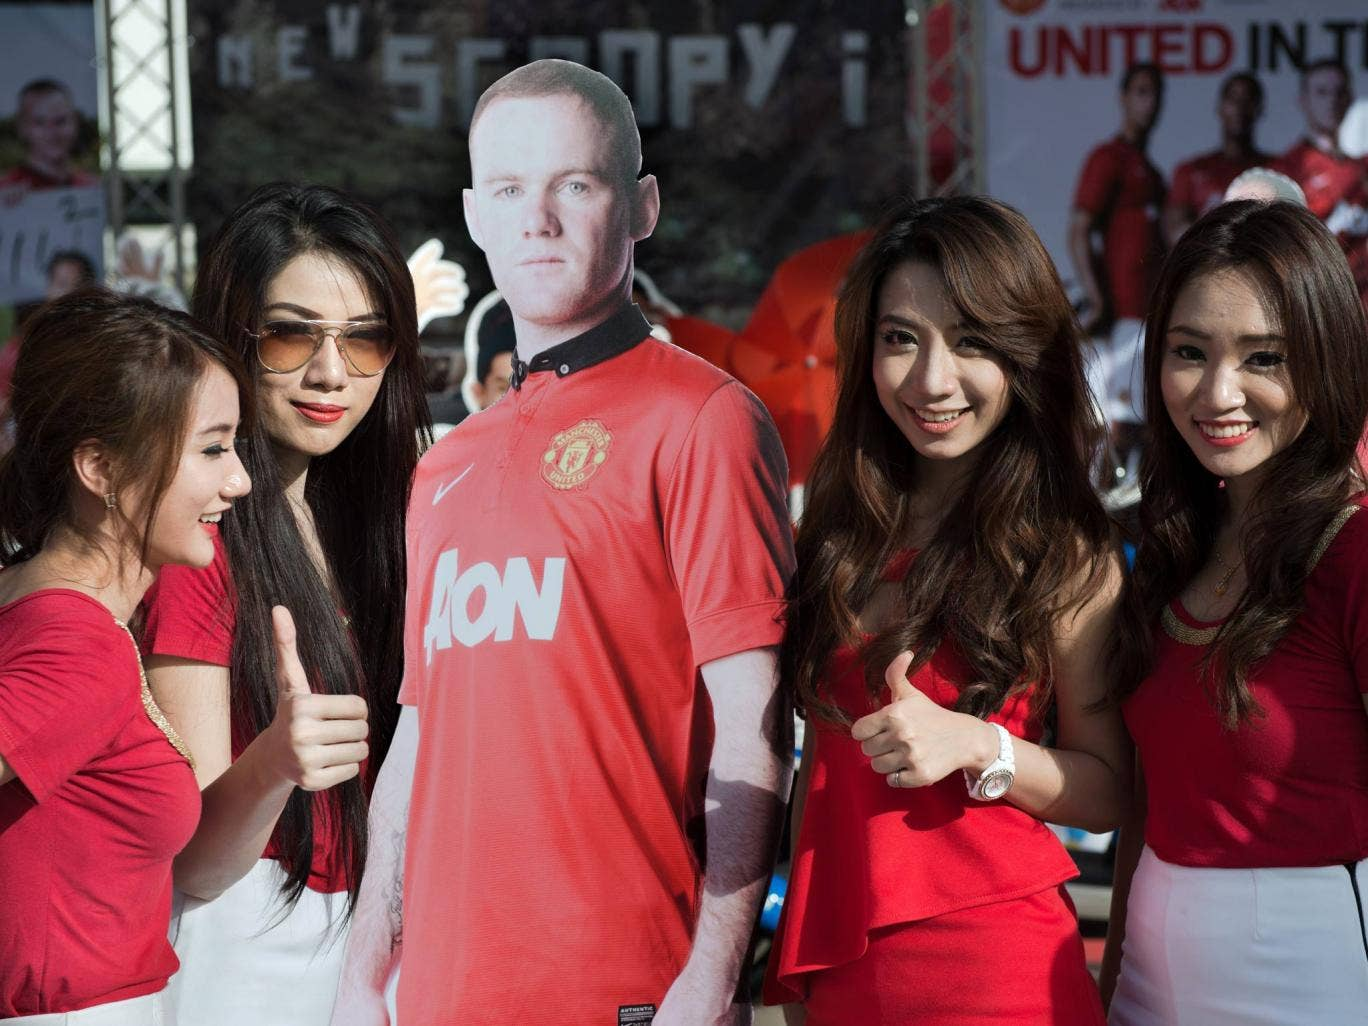 Wayne Rooney is replaced by a cardboard cut-out on United's tour